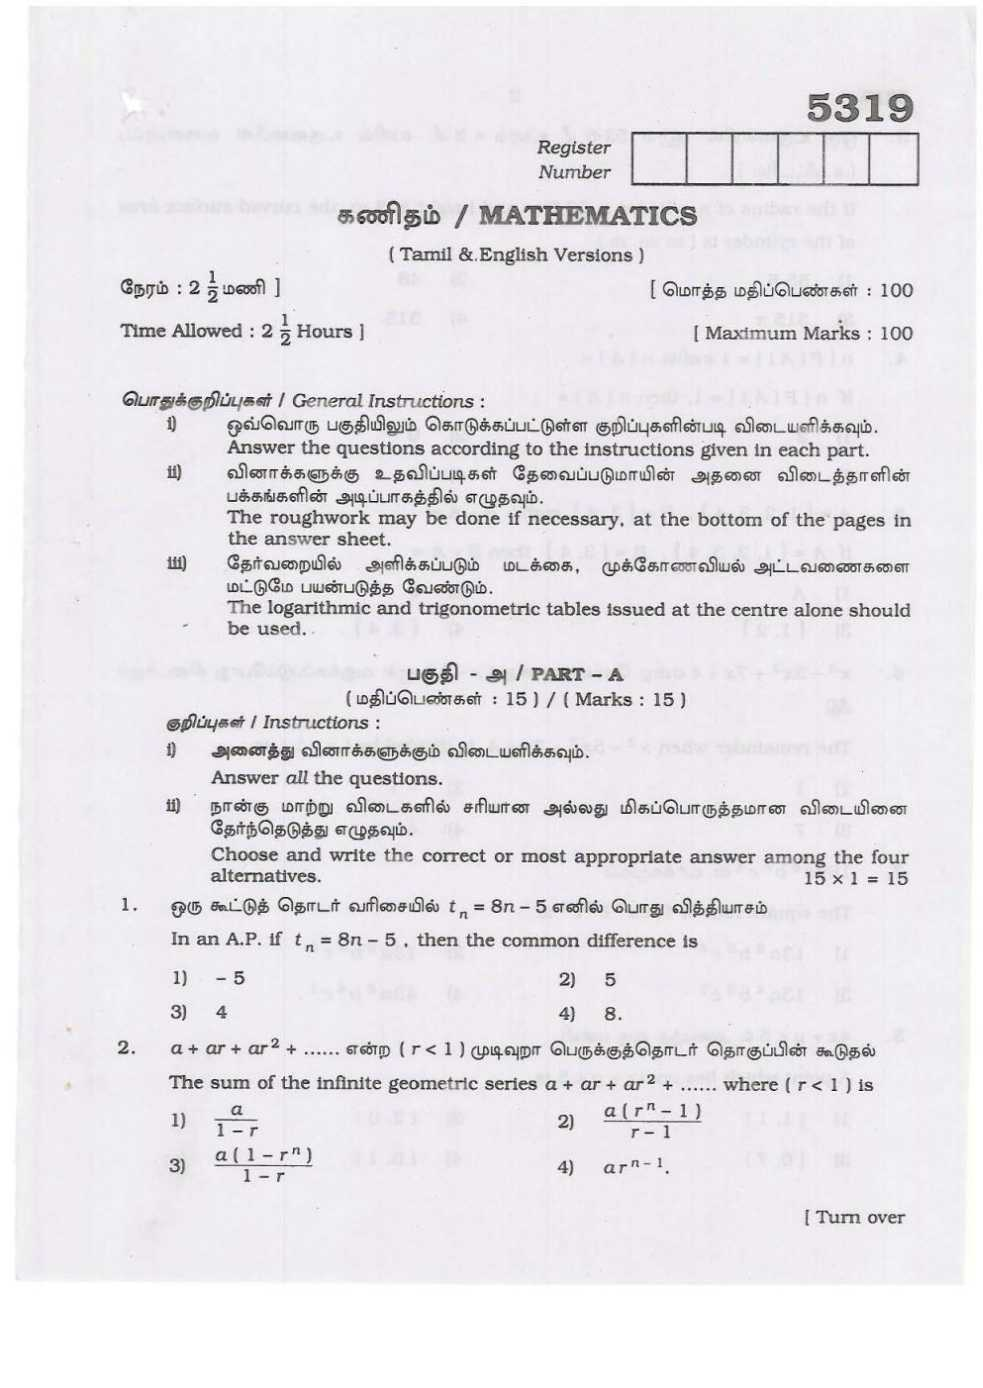 Tamil Nadu 10th Matric Board previous year question papers